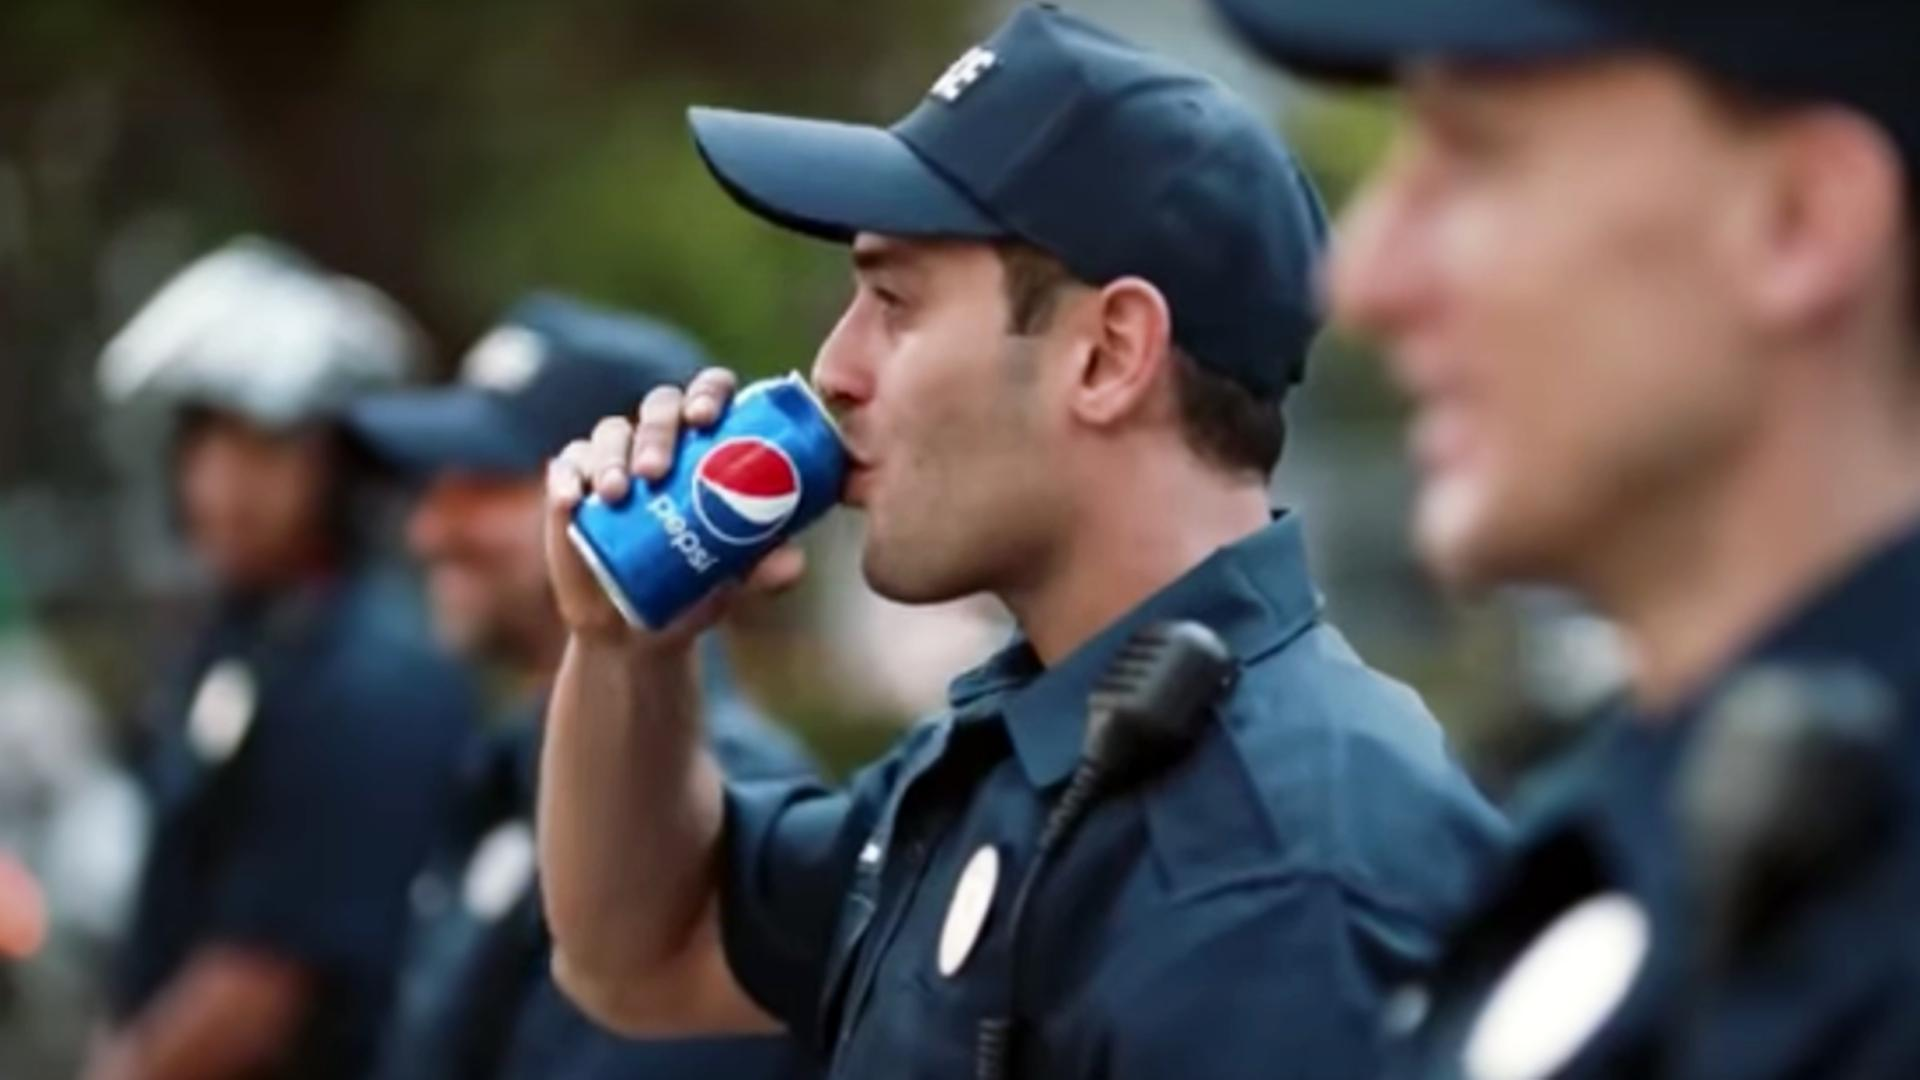 Pepsi's Protest Ad Is Just One Example of Big Soda's Hidden Hypocrisy  (MUNCHIES,APR 6 2017)